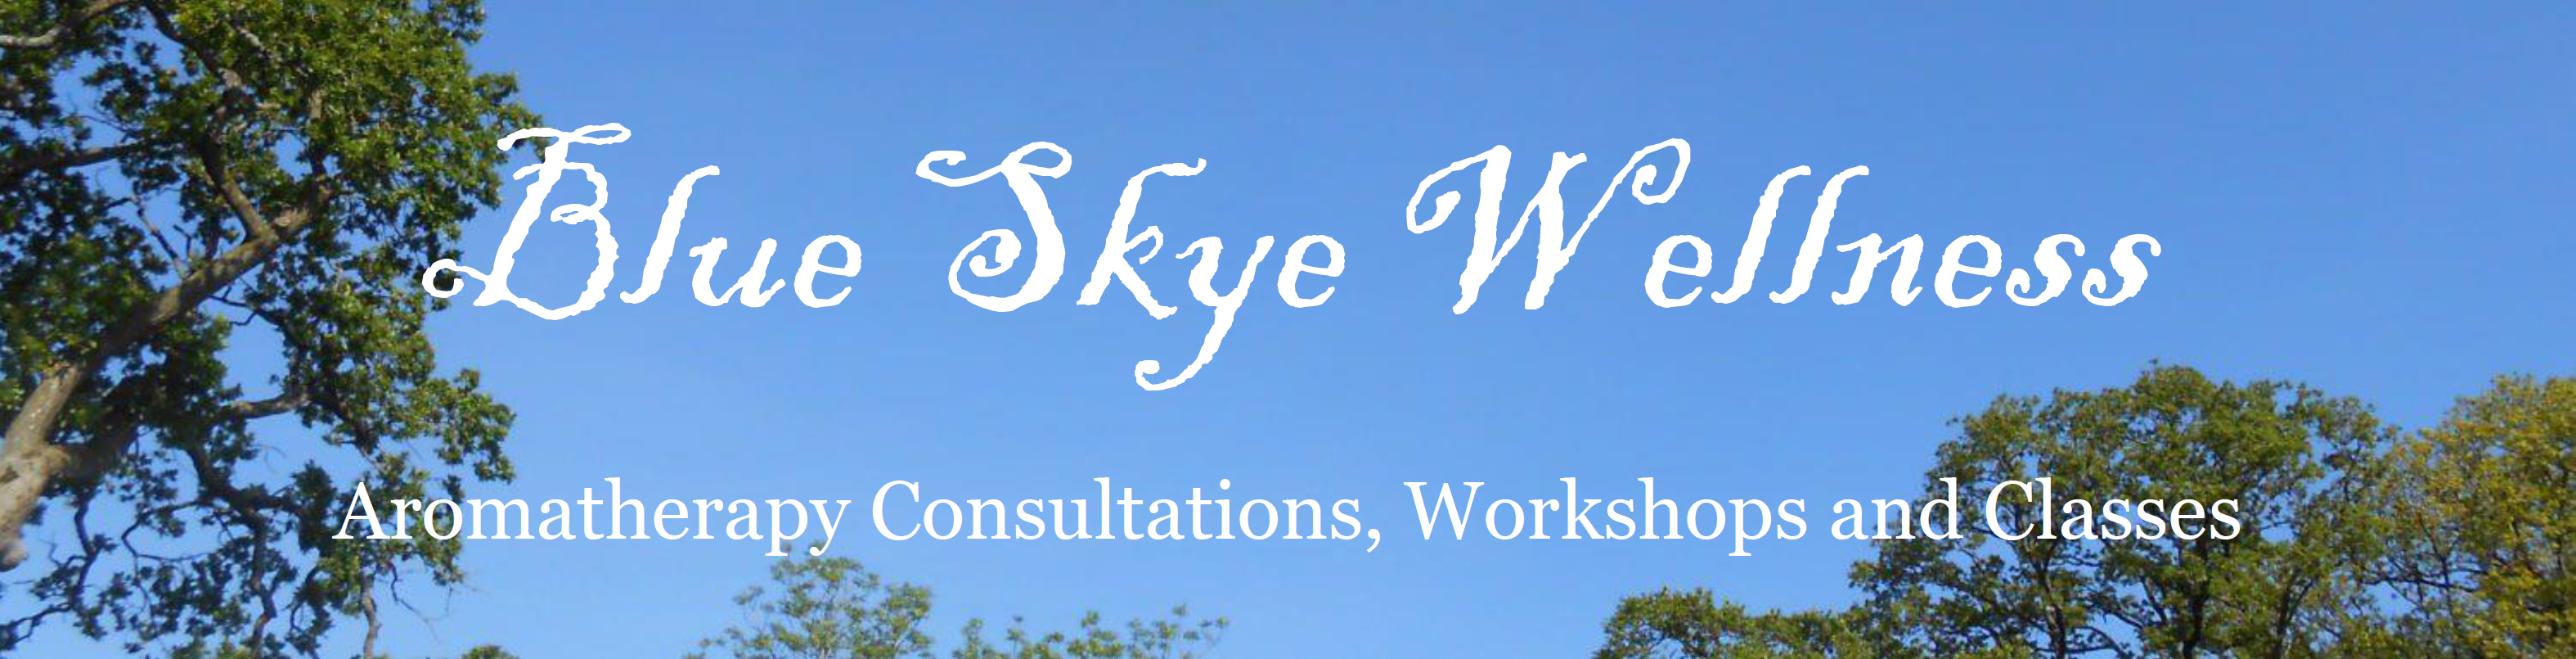 Blue Skye Wellness